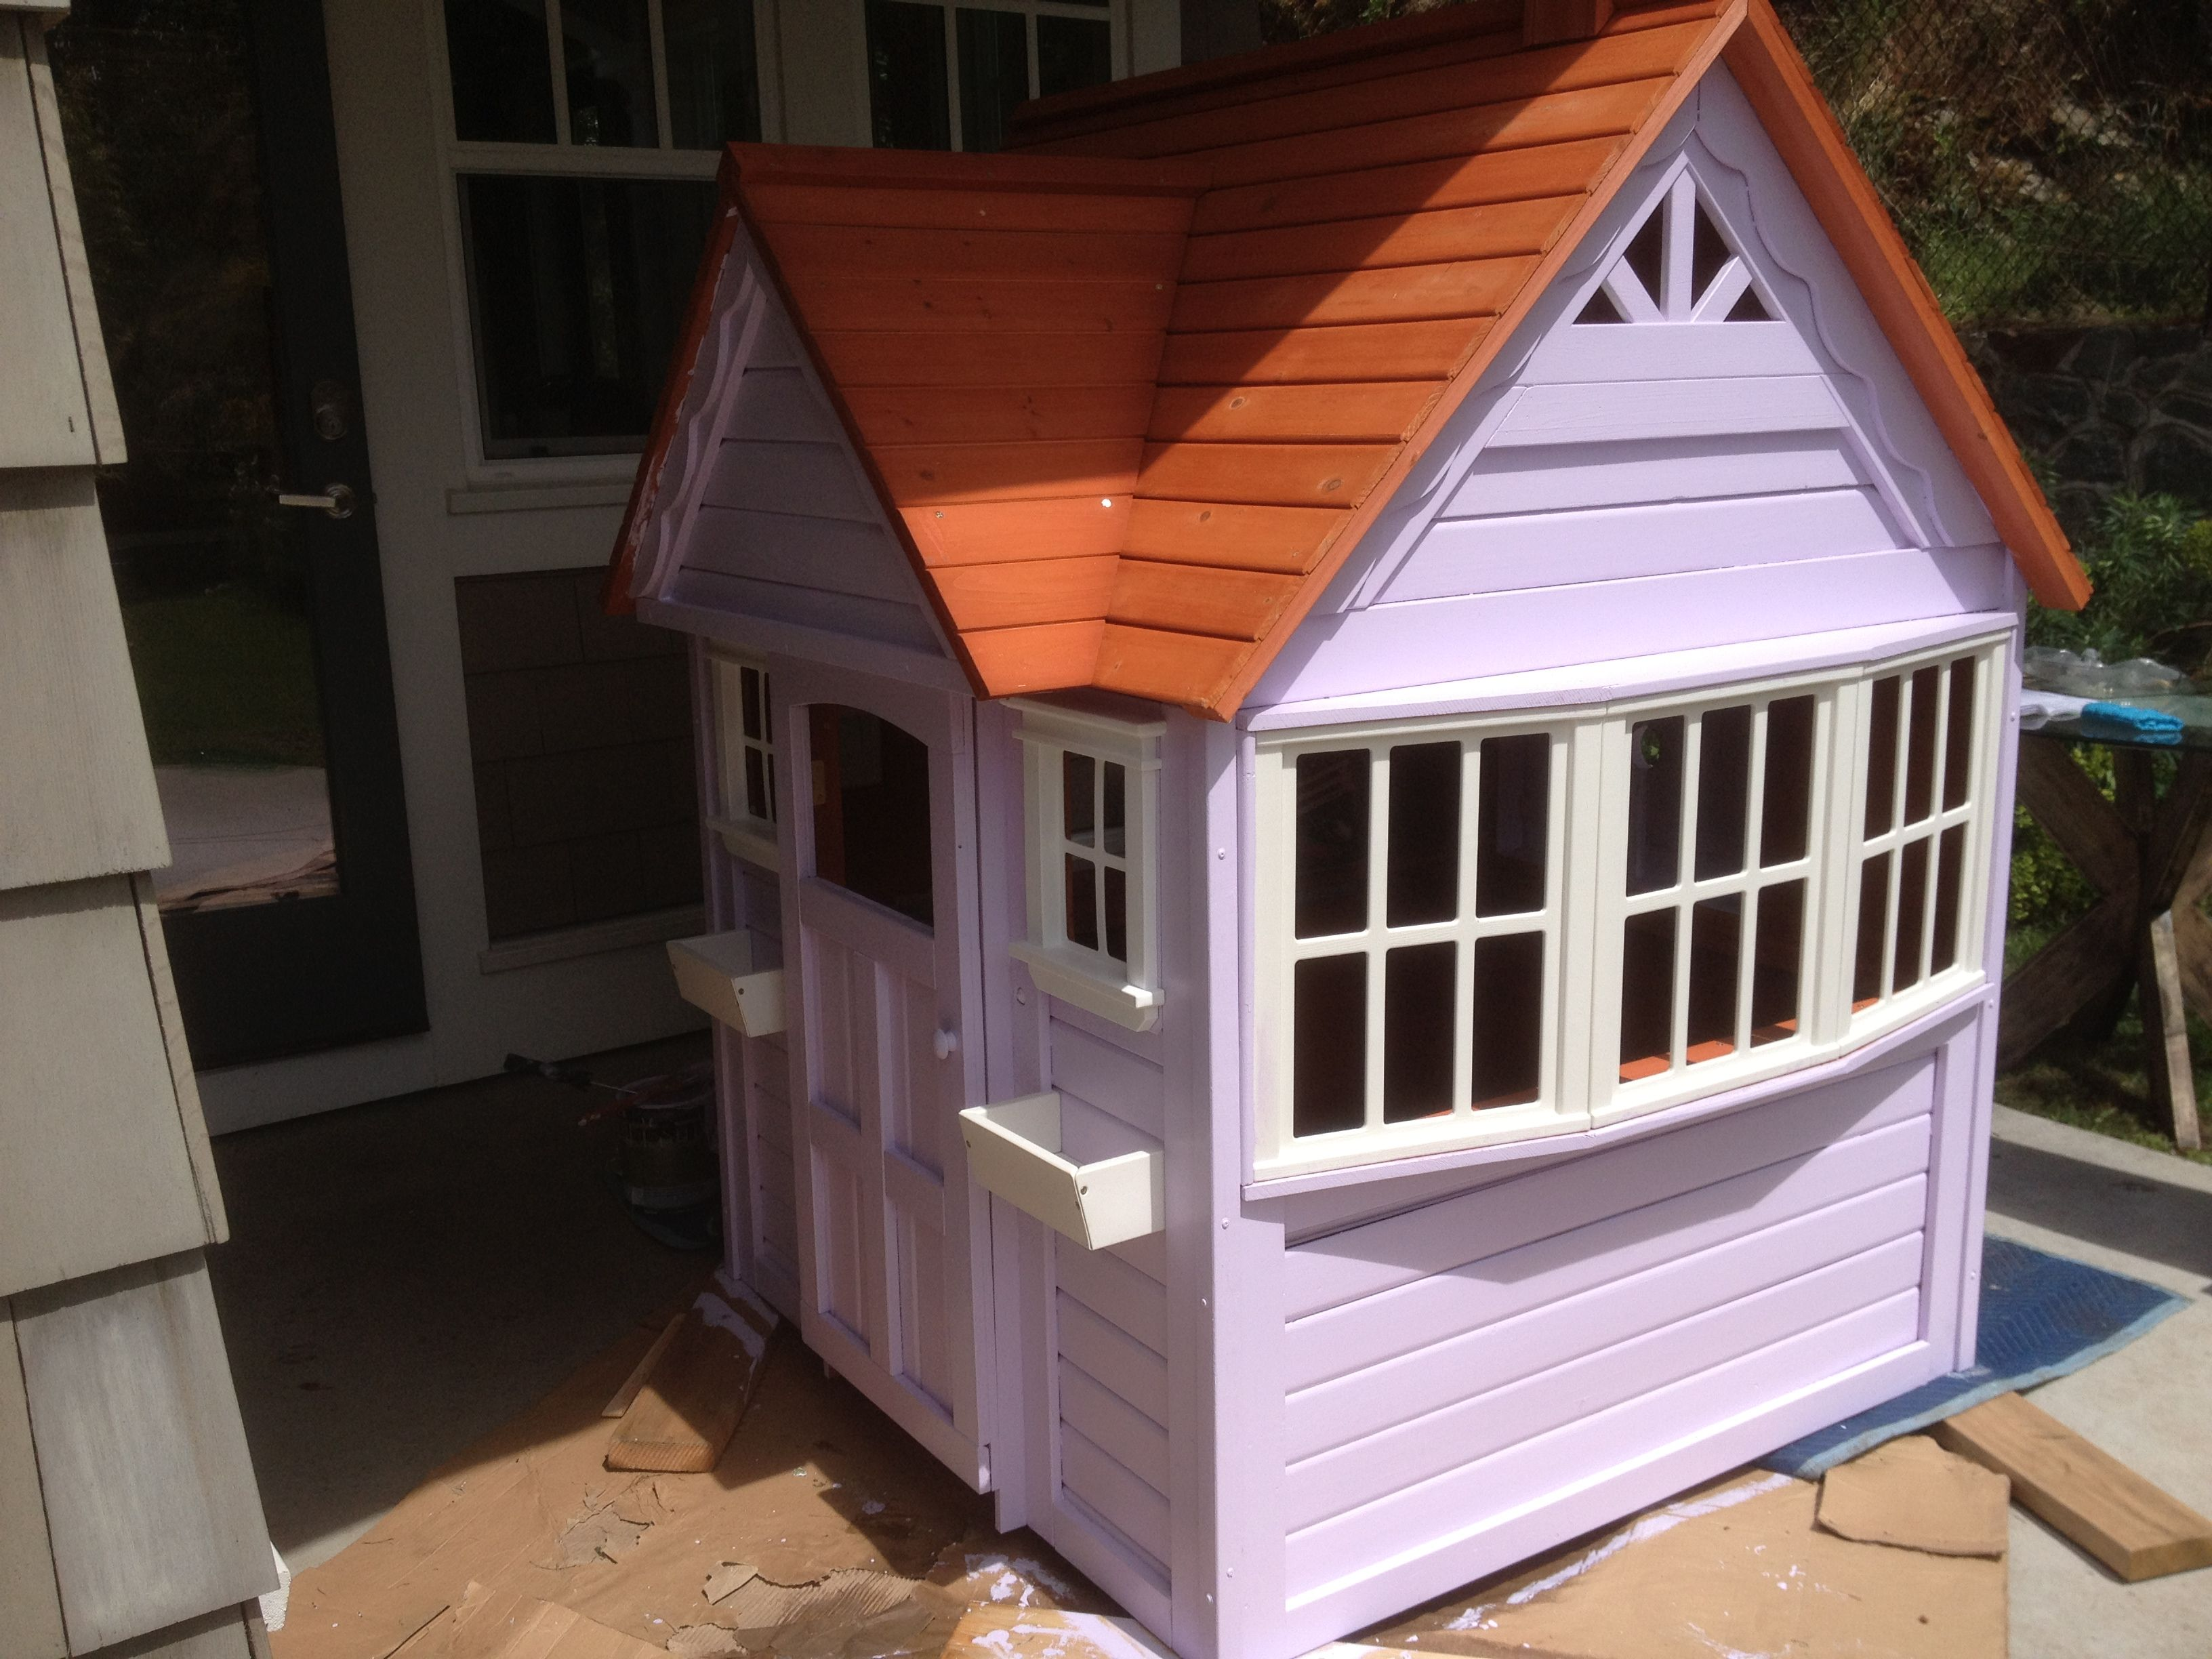 painting a costco playhouse. DIY fix to create a custom look via http://houseandbloom.com/playful-purple-playhouse/